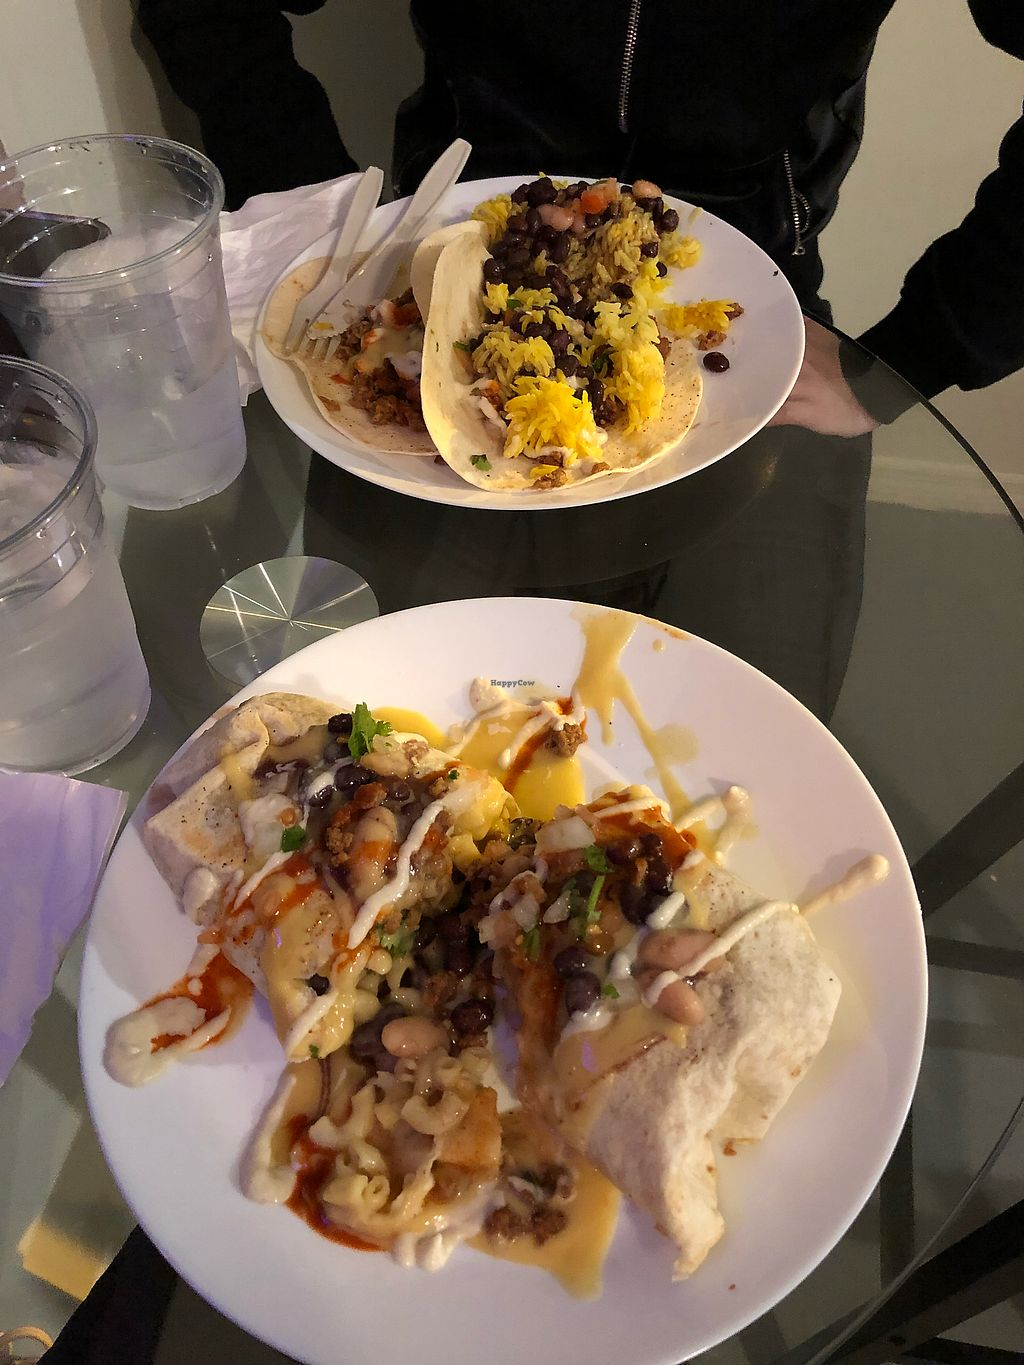 """Photo of Wildflower Vegan Co. Featuring Burnamup  by <a href=""""/members/profile/AmandaBrody"""">AmandaBrody</a> <br/>Smothered Chili Mac Burrito and Dos Tacos <br/> January 16, 2018  - <a href='/contact/abuse/image/109093/347055'>Report</a>"""